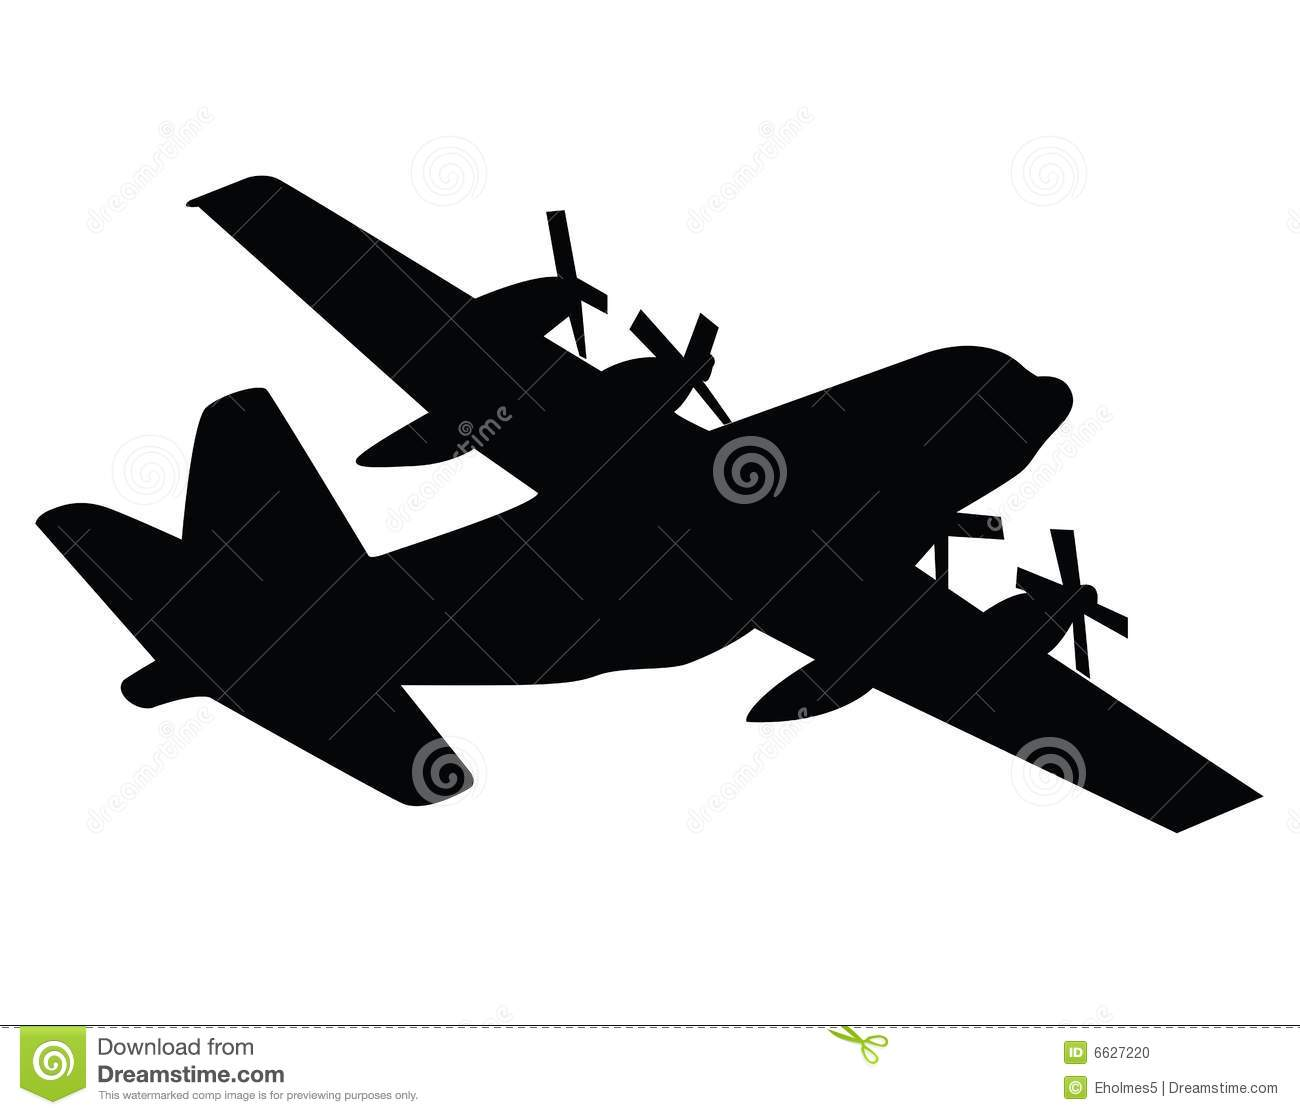 plane boat clipart with Stock Photo Coast Guard C130 Image6627220 on Icons And Symbols Transport 33073 Vector Clipart together with Sport Fish Clipart additionally Transparent Wave furthermore Cartoon Outline ysvmhvueu4MVwgitDZxxN 7CO6IwRFtNcTYJn7gX8Tunw together with Large Shipping Boat Carrying Shipping Containers.